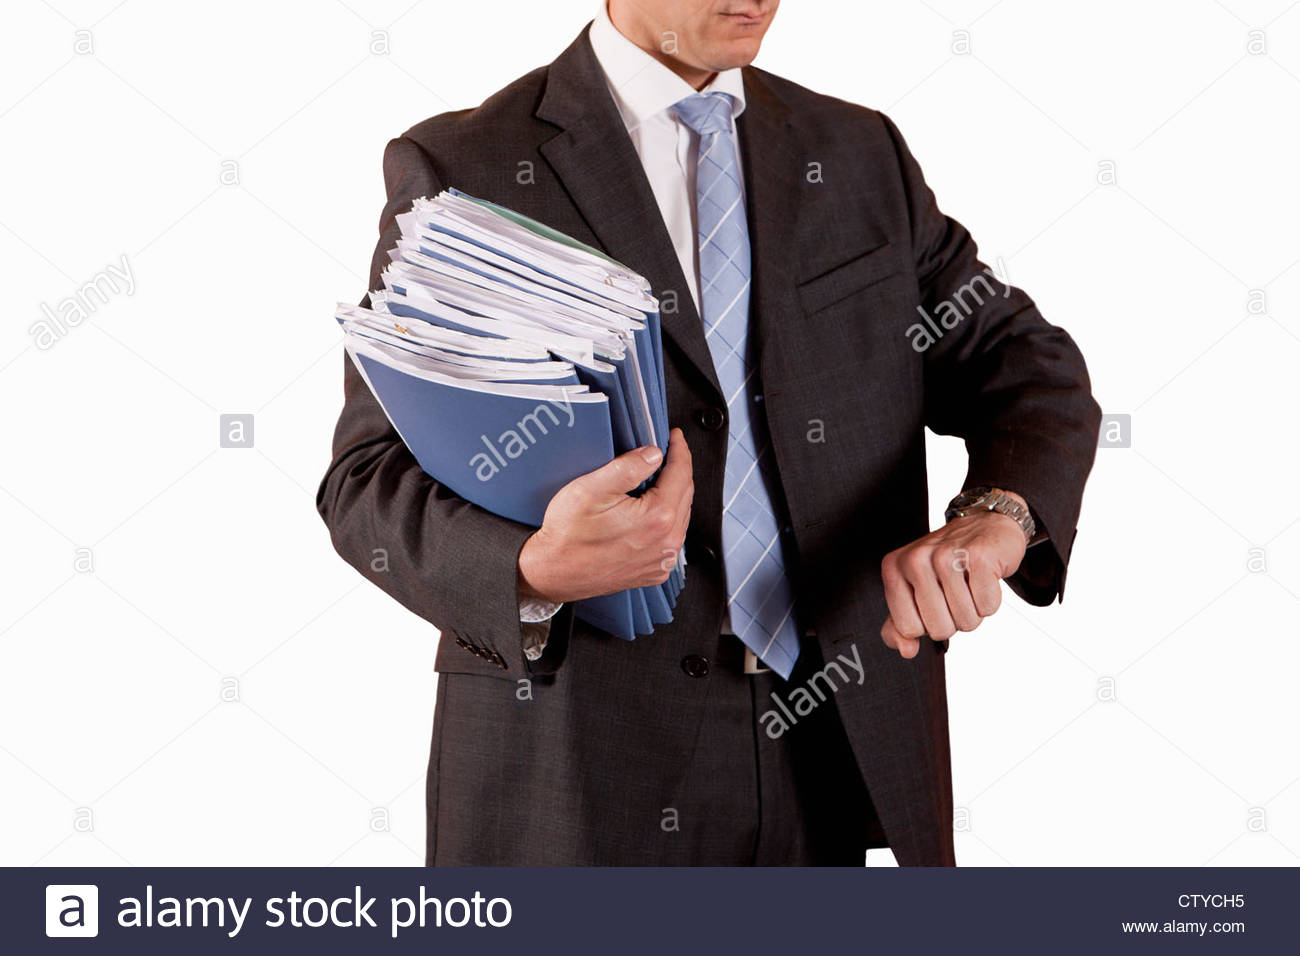 Cut Out Of Middle Aged Male Executive Holding Documents And Checking Watch - Stock Image